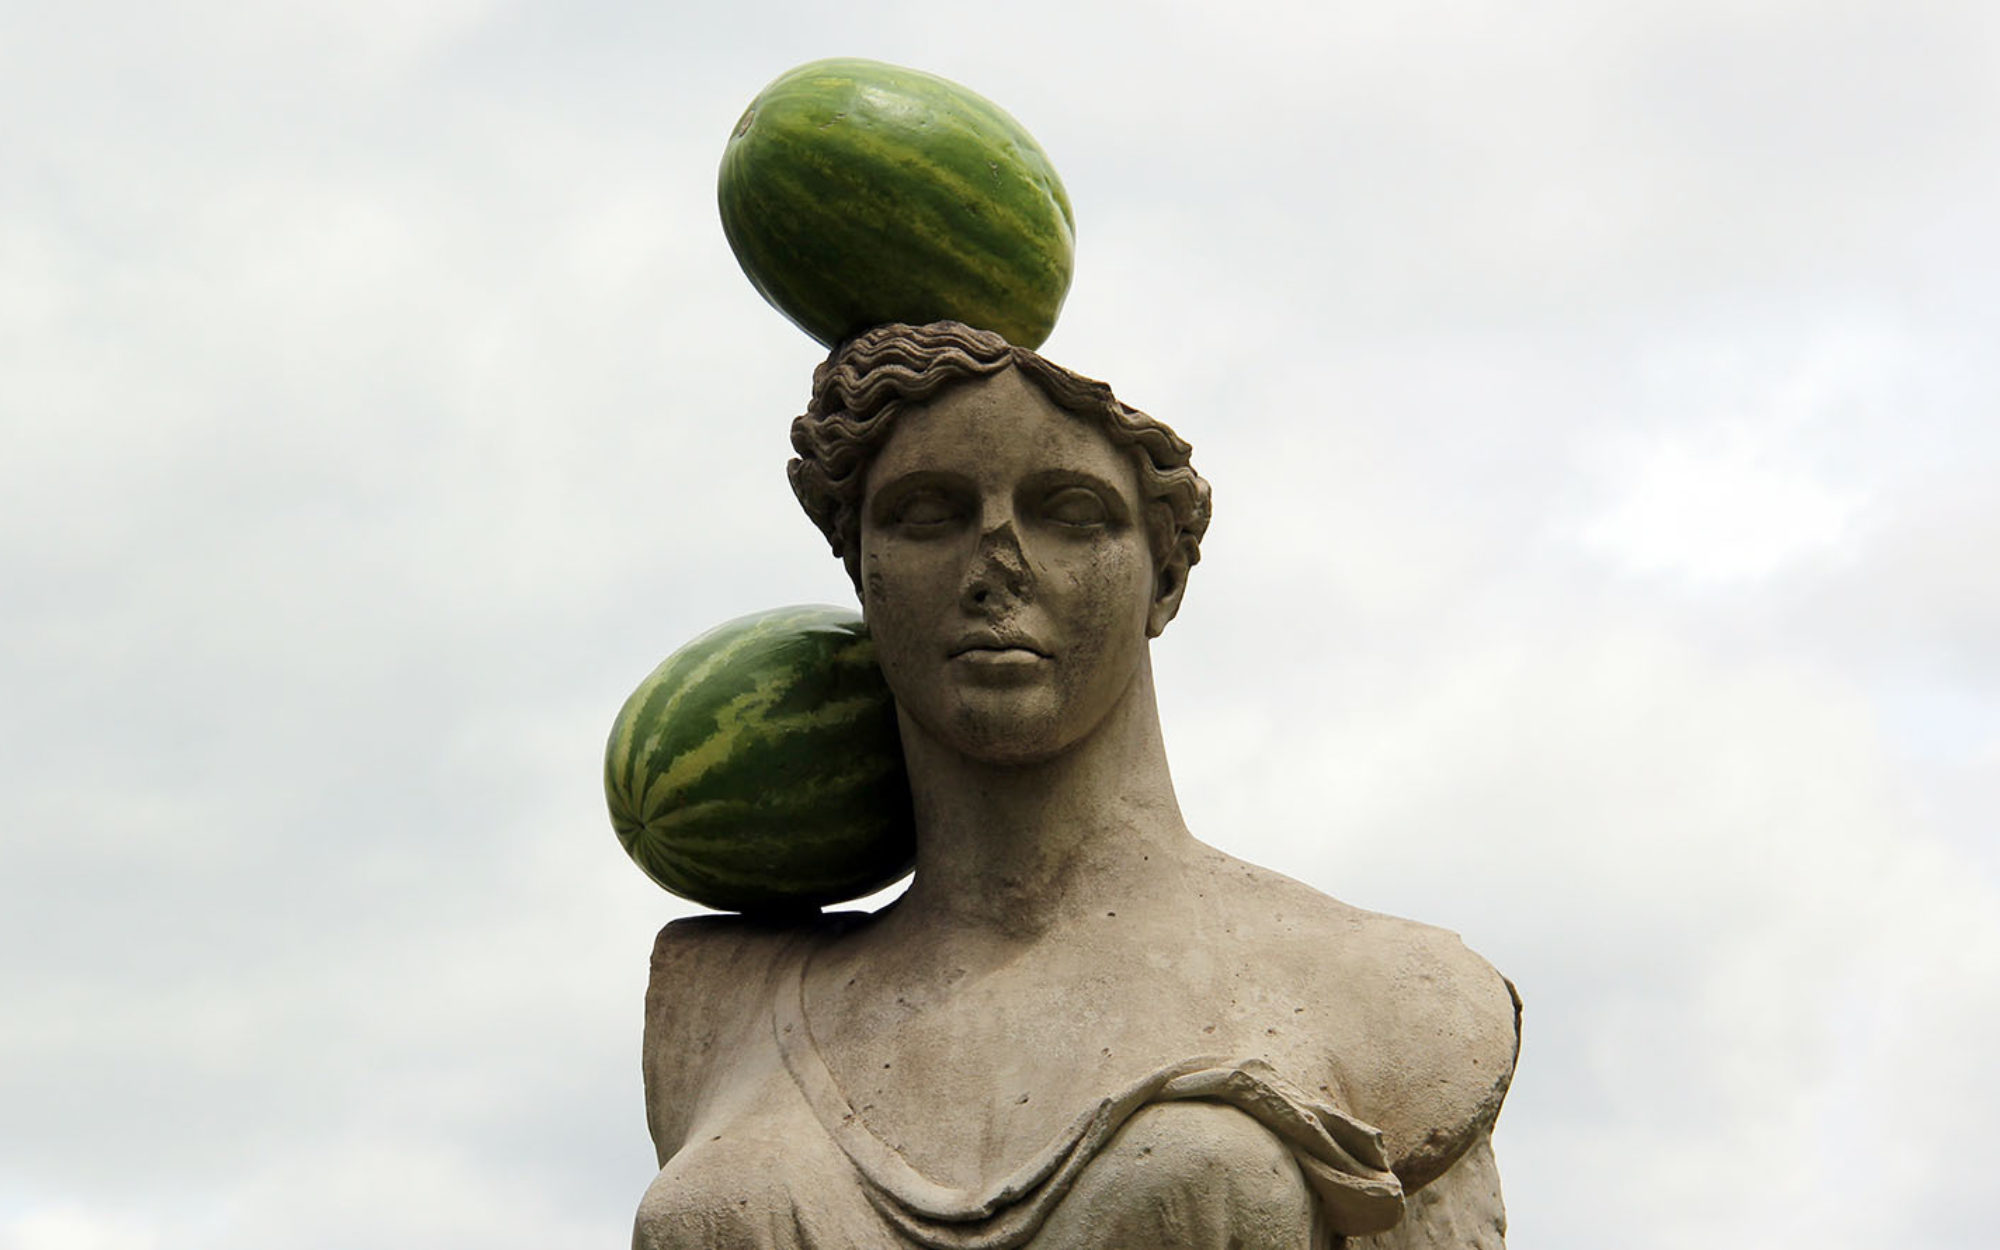 Stone sculpture with two watermelons resting on head